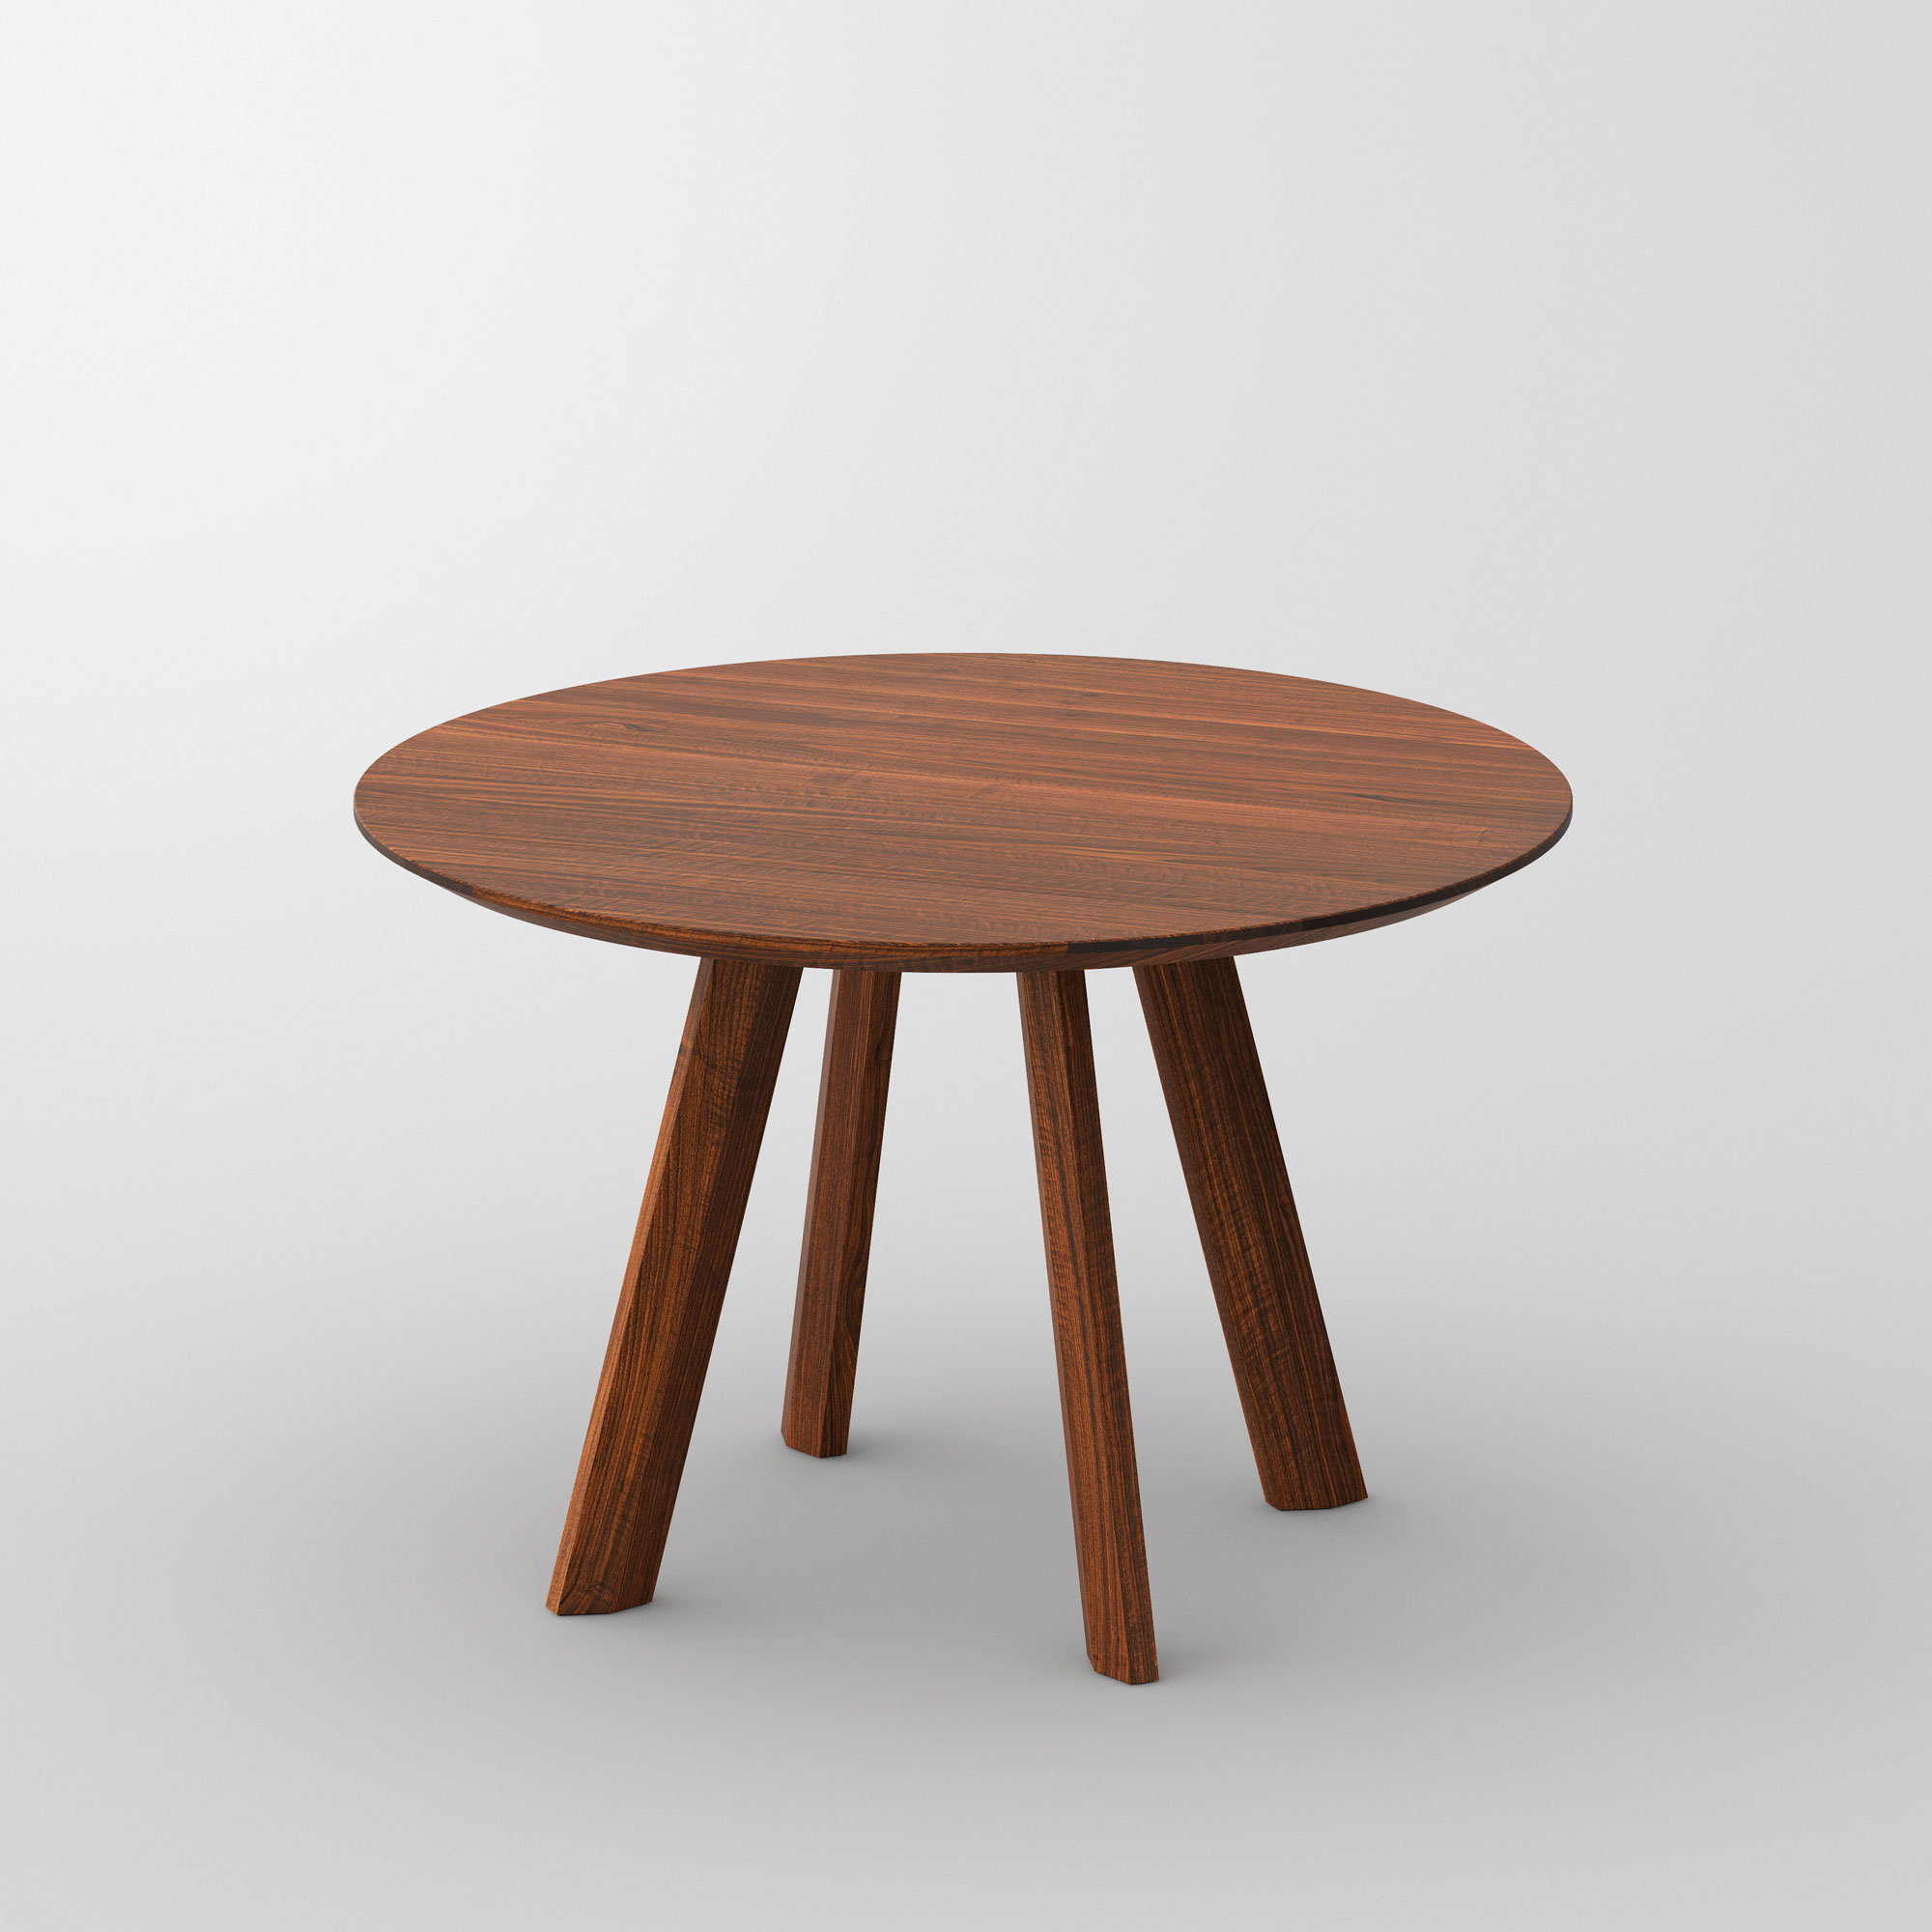 Designer Round Table RHOMBI ROUND cam1 custom made in solid wood by vitamin design